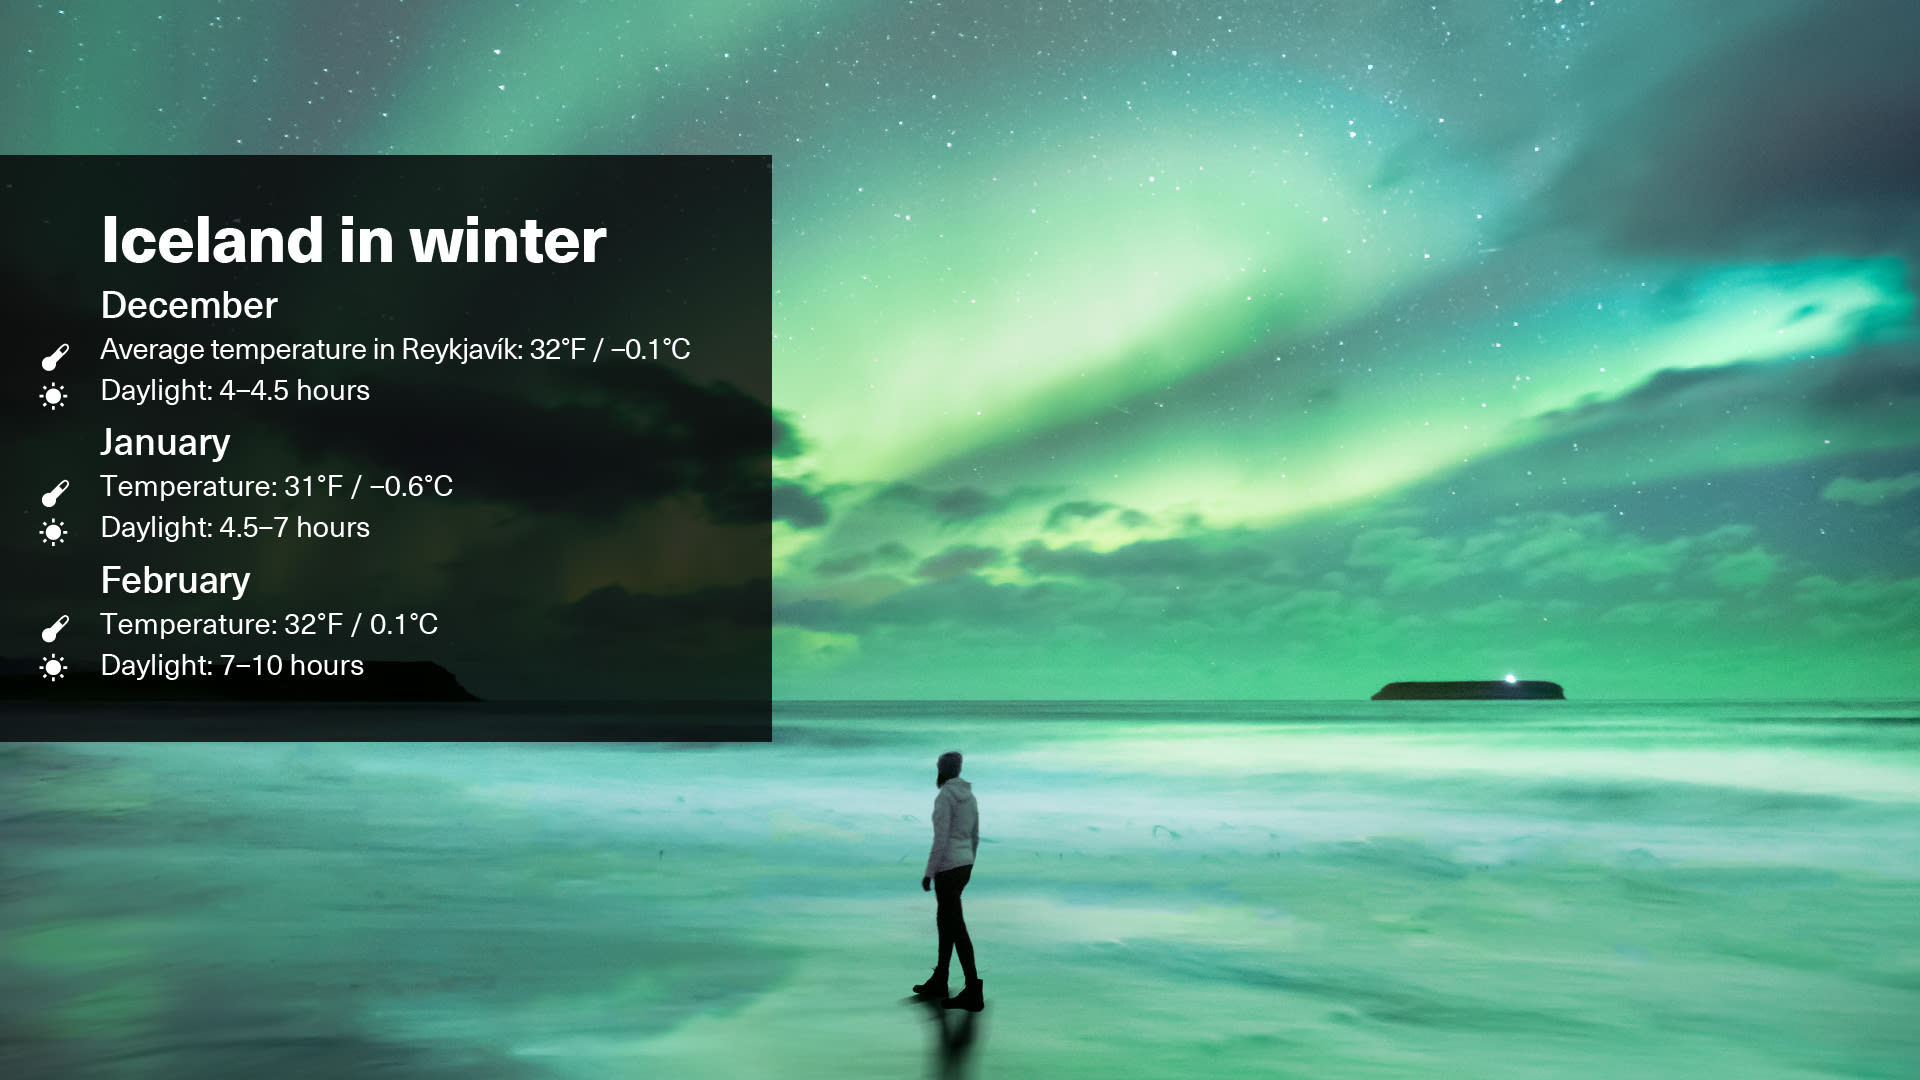 Winter weather displayed on a graphic illustrative image showing the temperature and daylight hours in December, January and February in Iceland